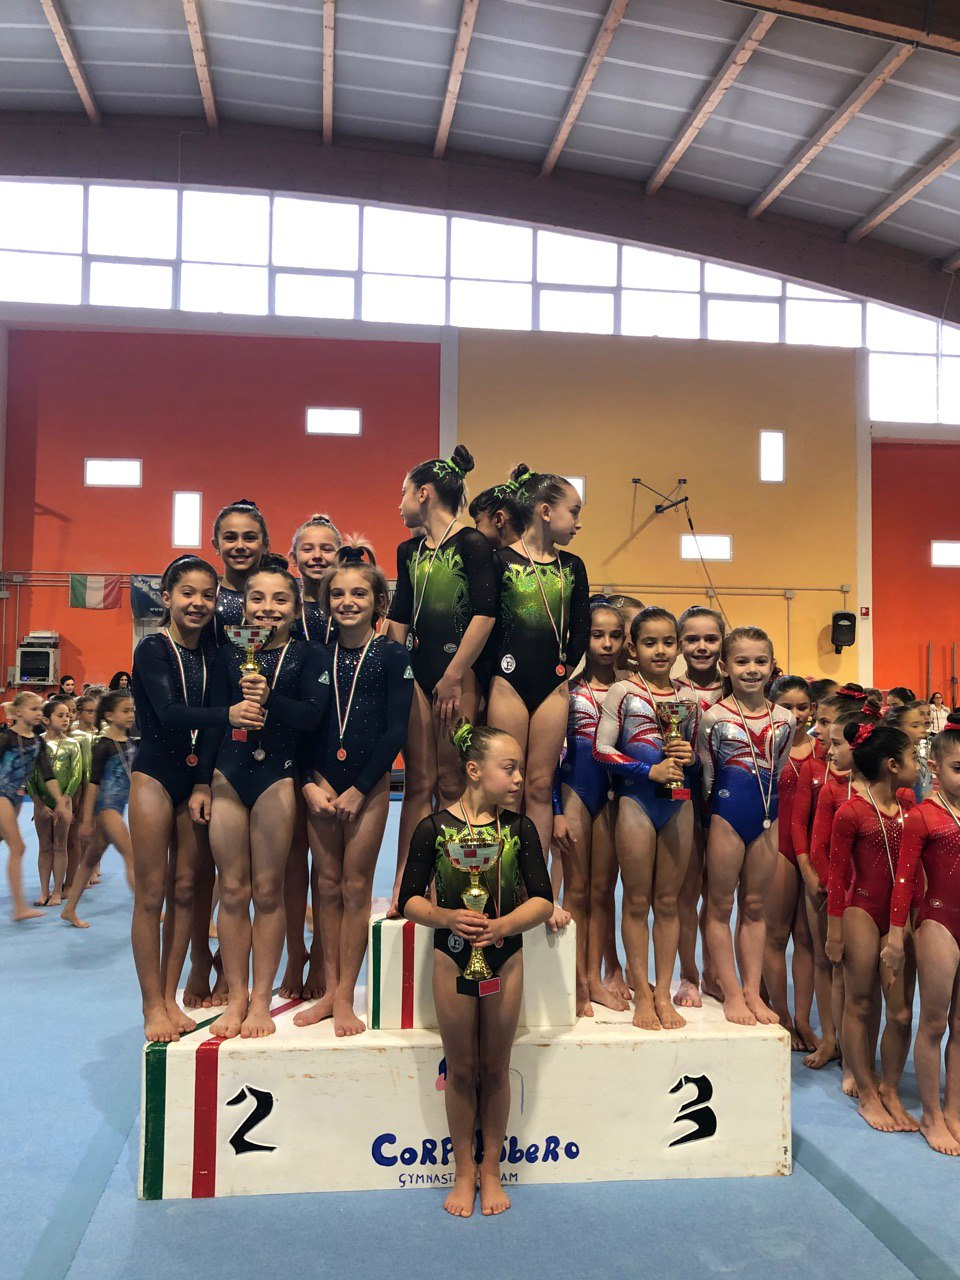 CAMPIONATO A SQUADRE GOLD ALLIEVE INTERREGIONALE